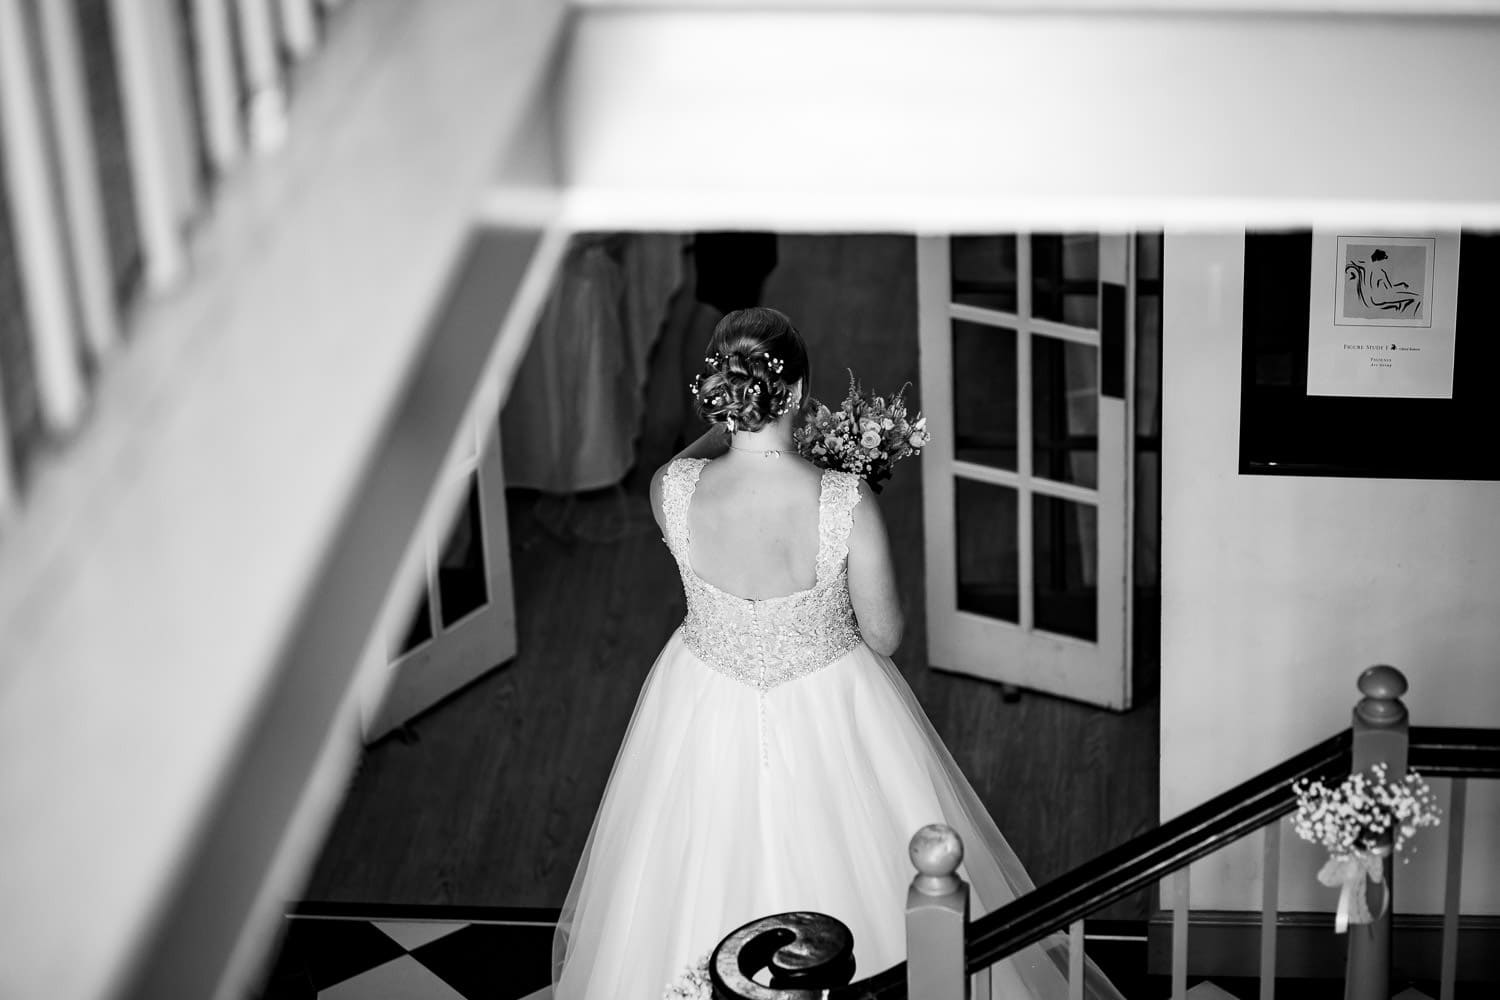 Warwick House Wedding Photography captures bride composing herself just before the ceremony